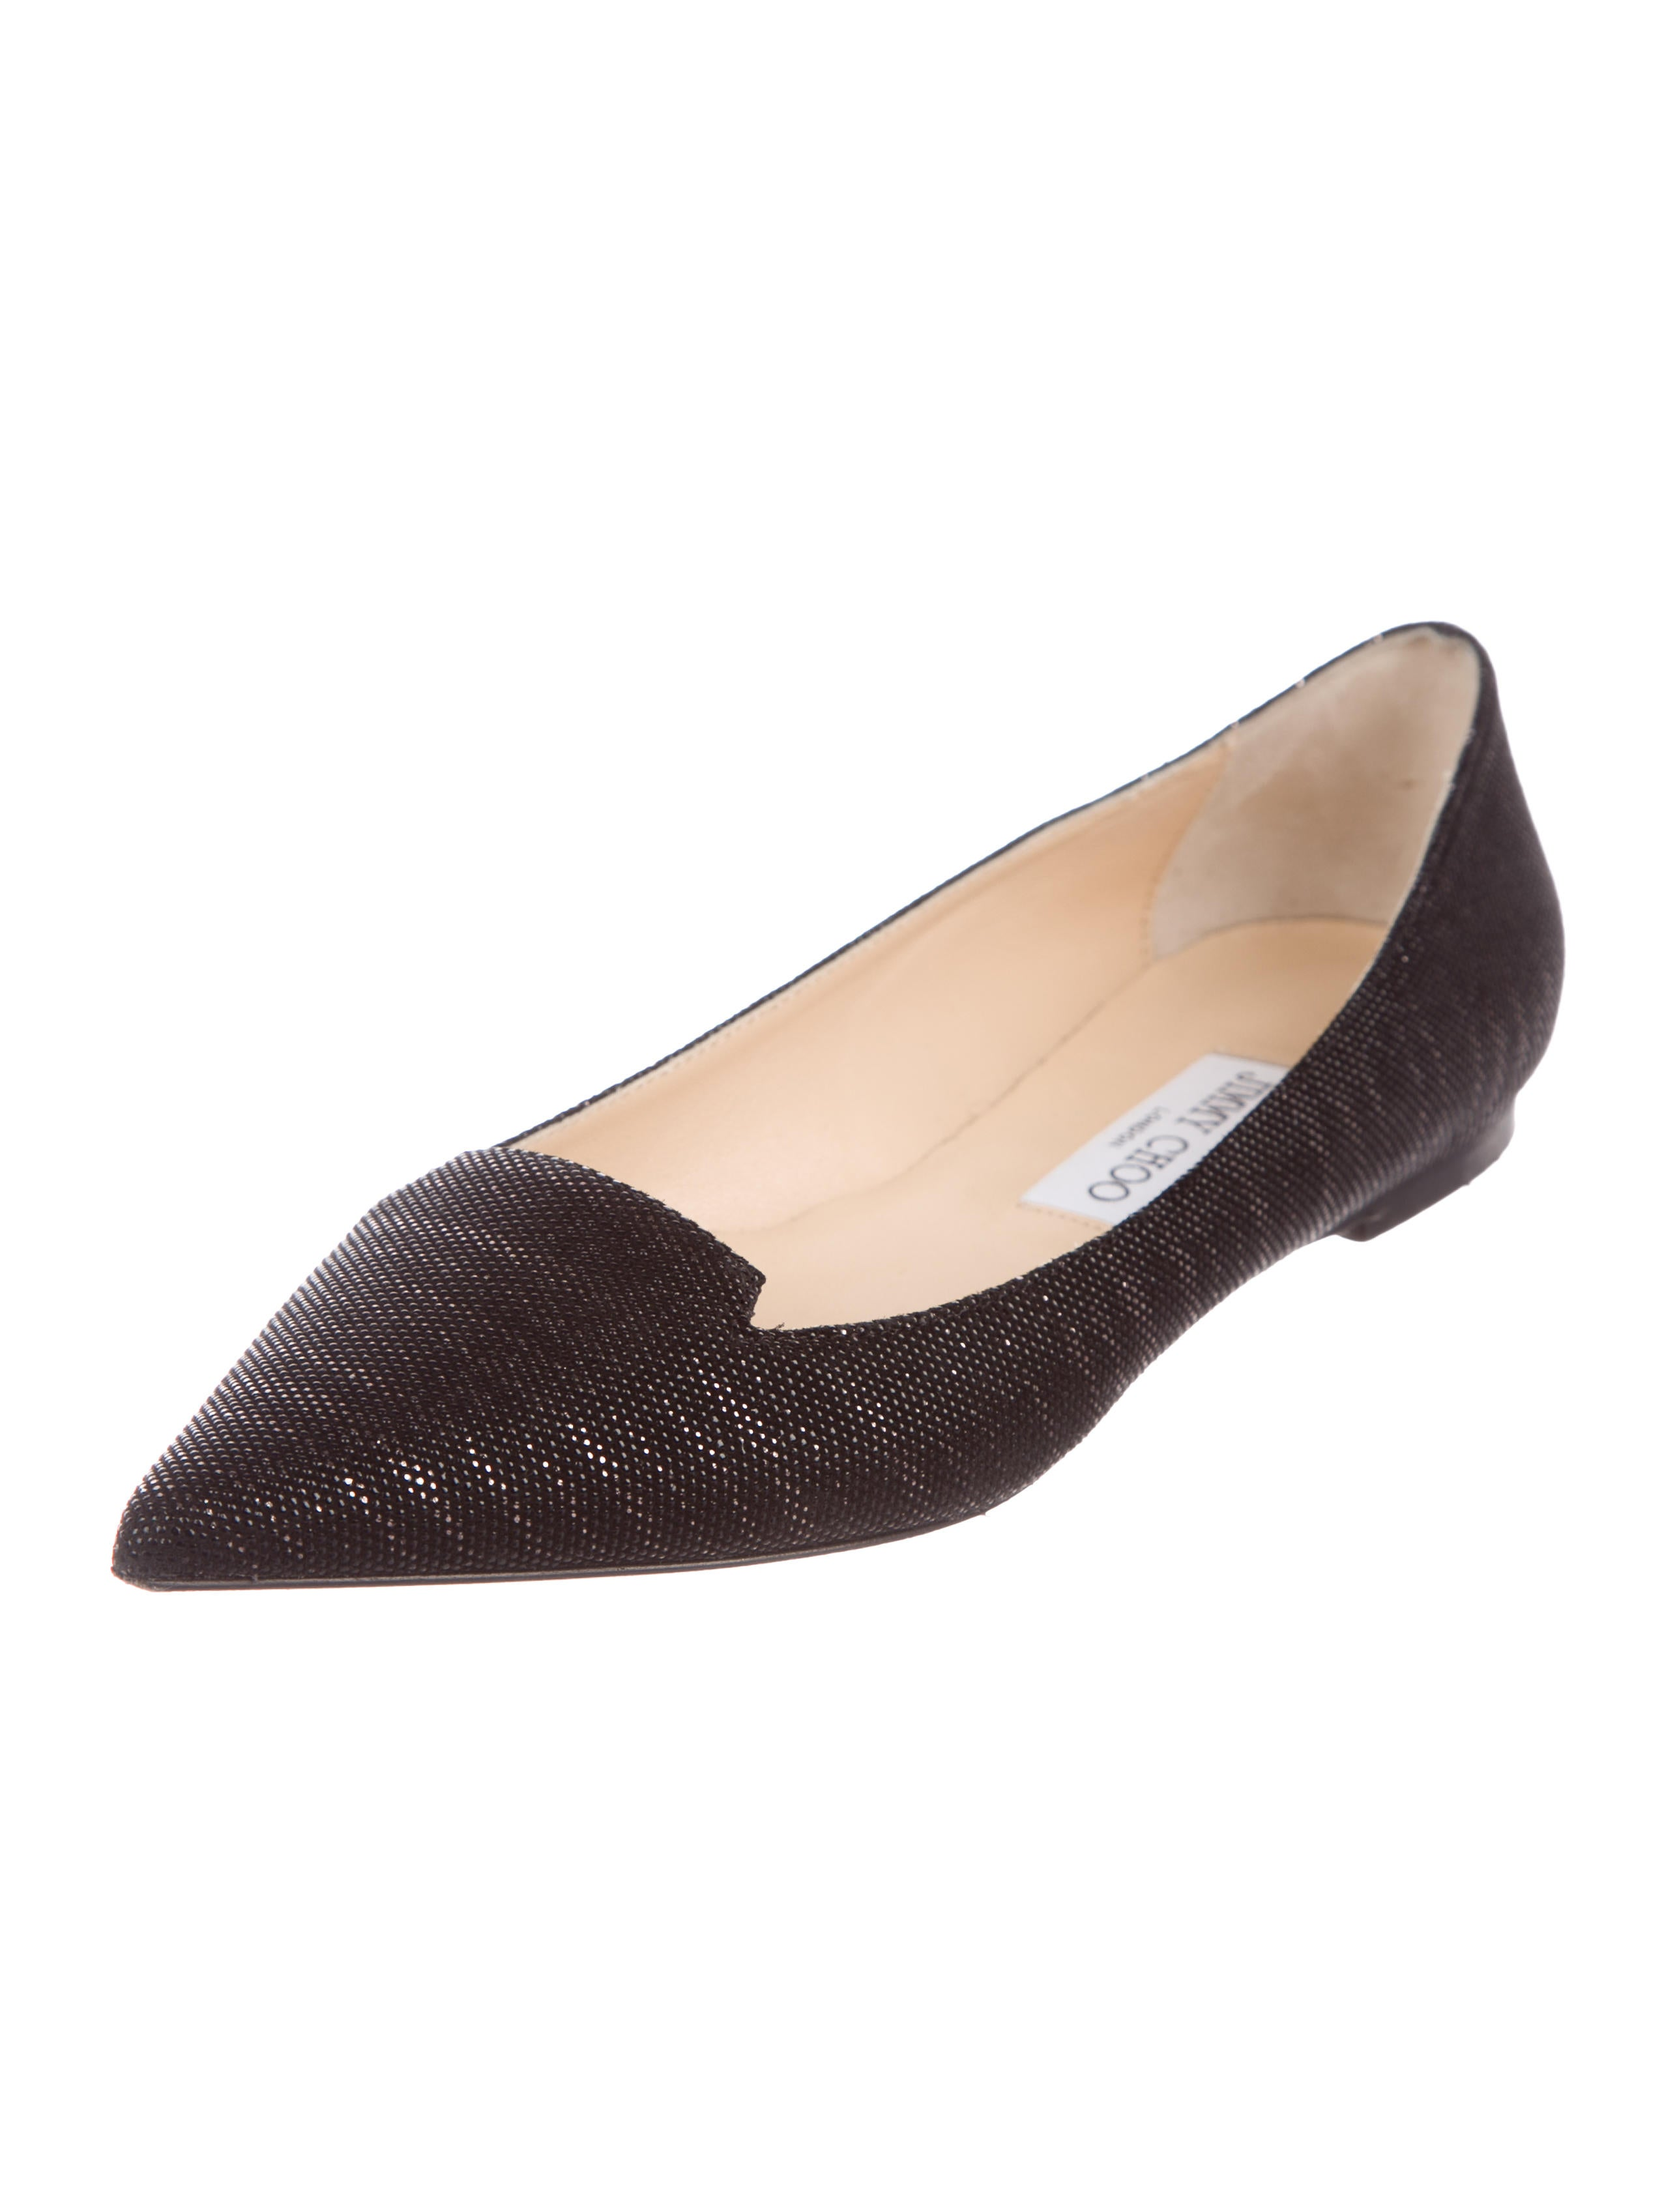 Jimmy Choo Atilla Goosebump Flats with credit card for sale mmC65Xk